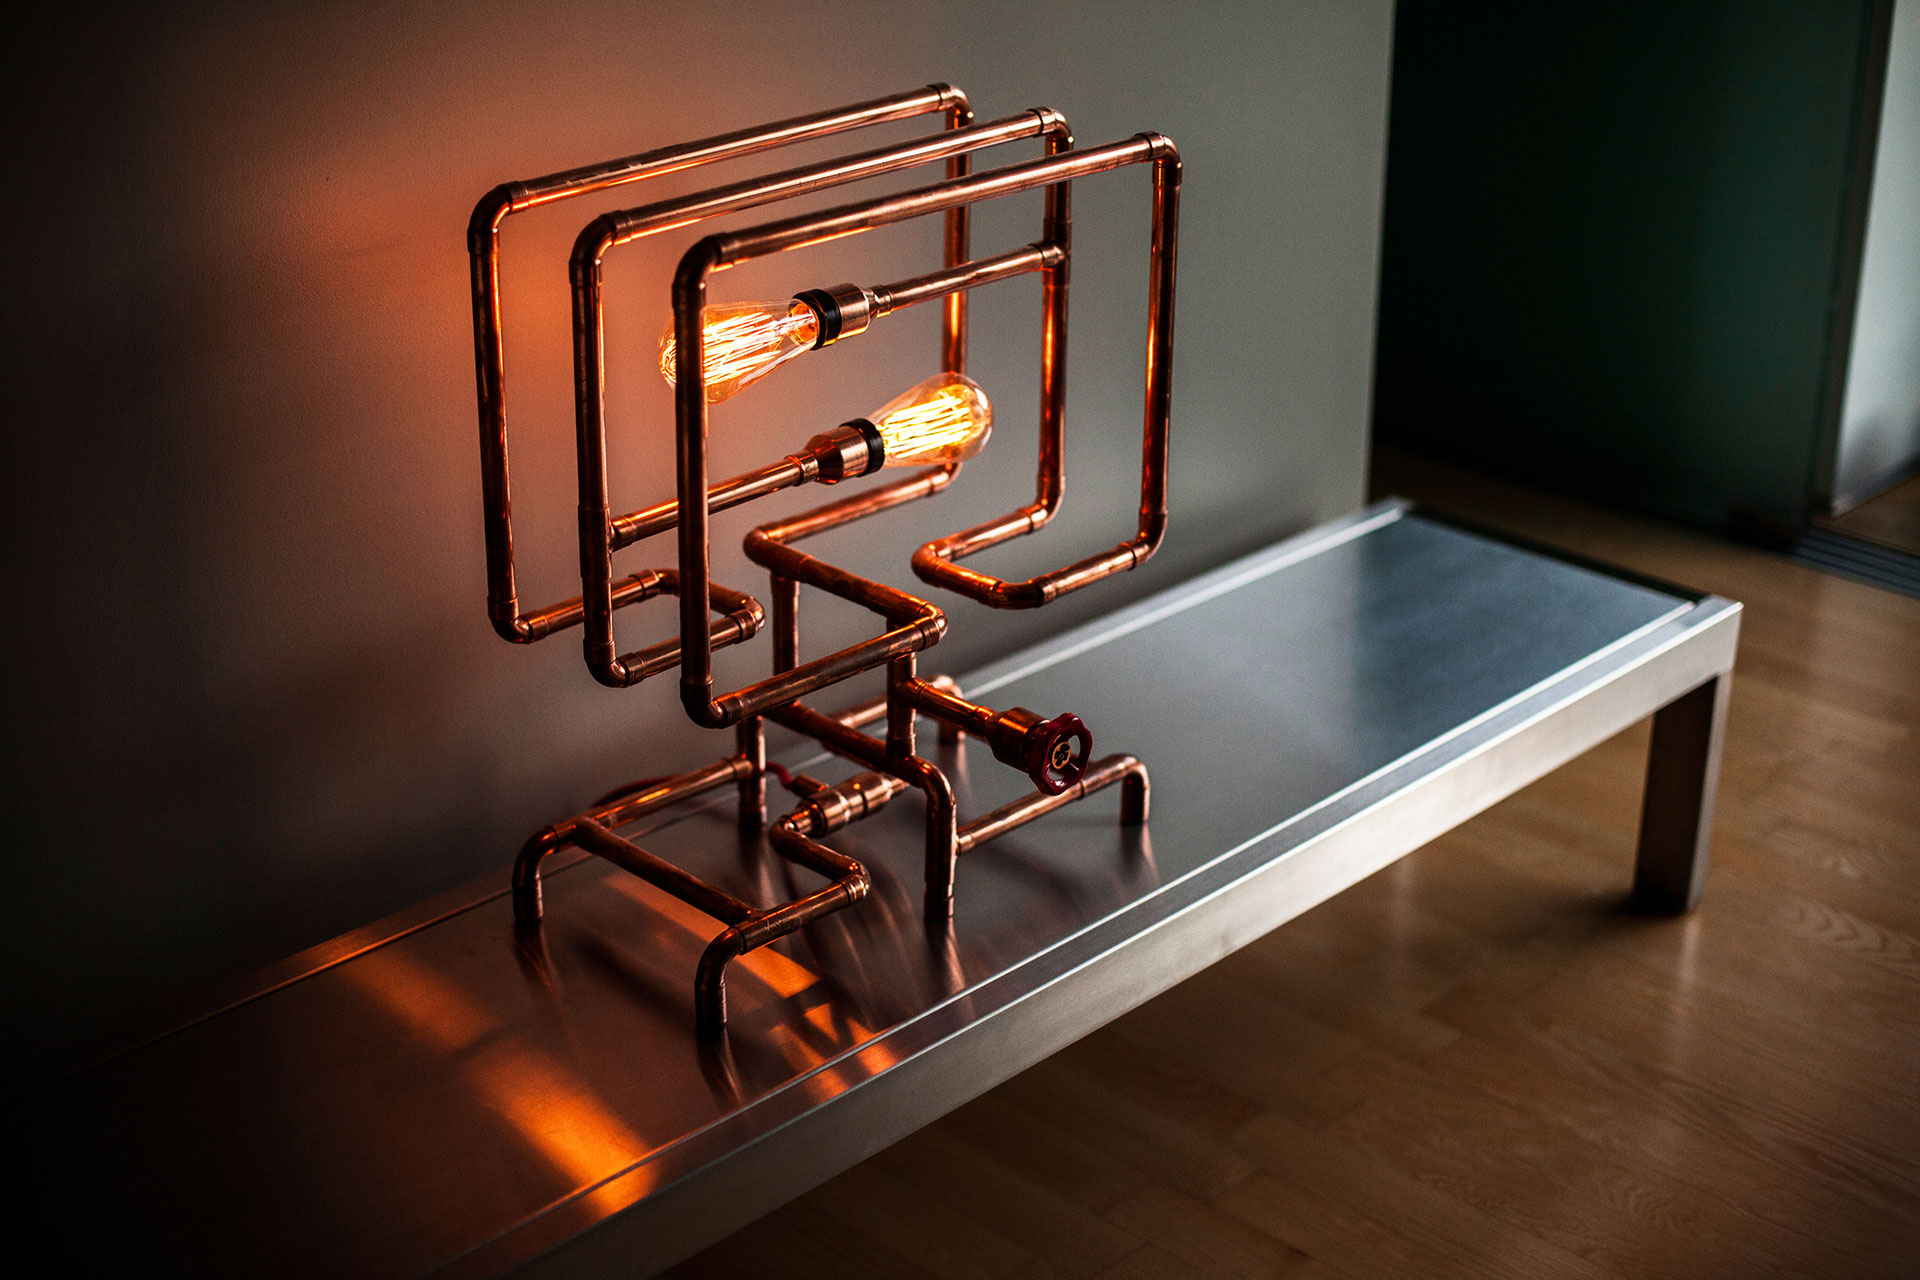 Industrial design copper table lamp with retro Edison bulbs in modern men's apartment